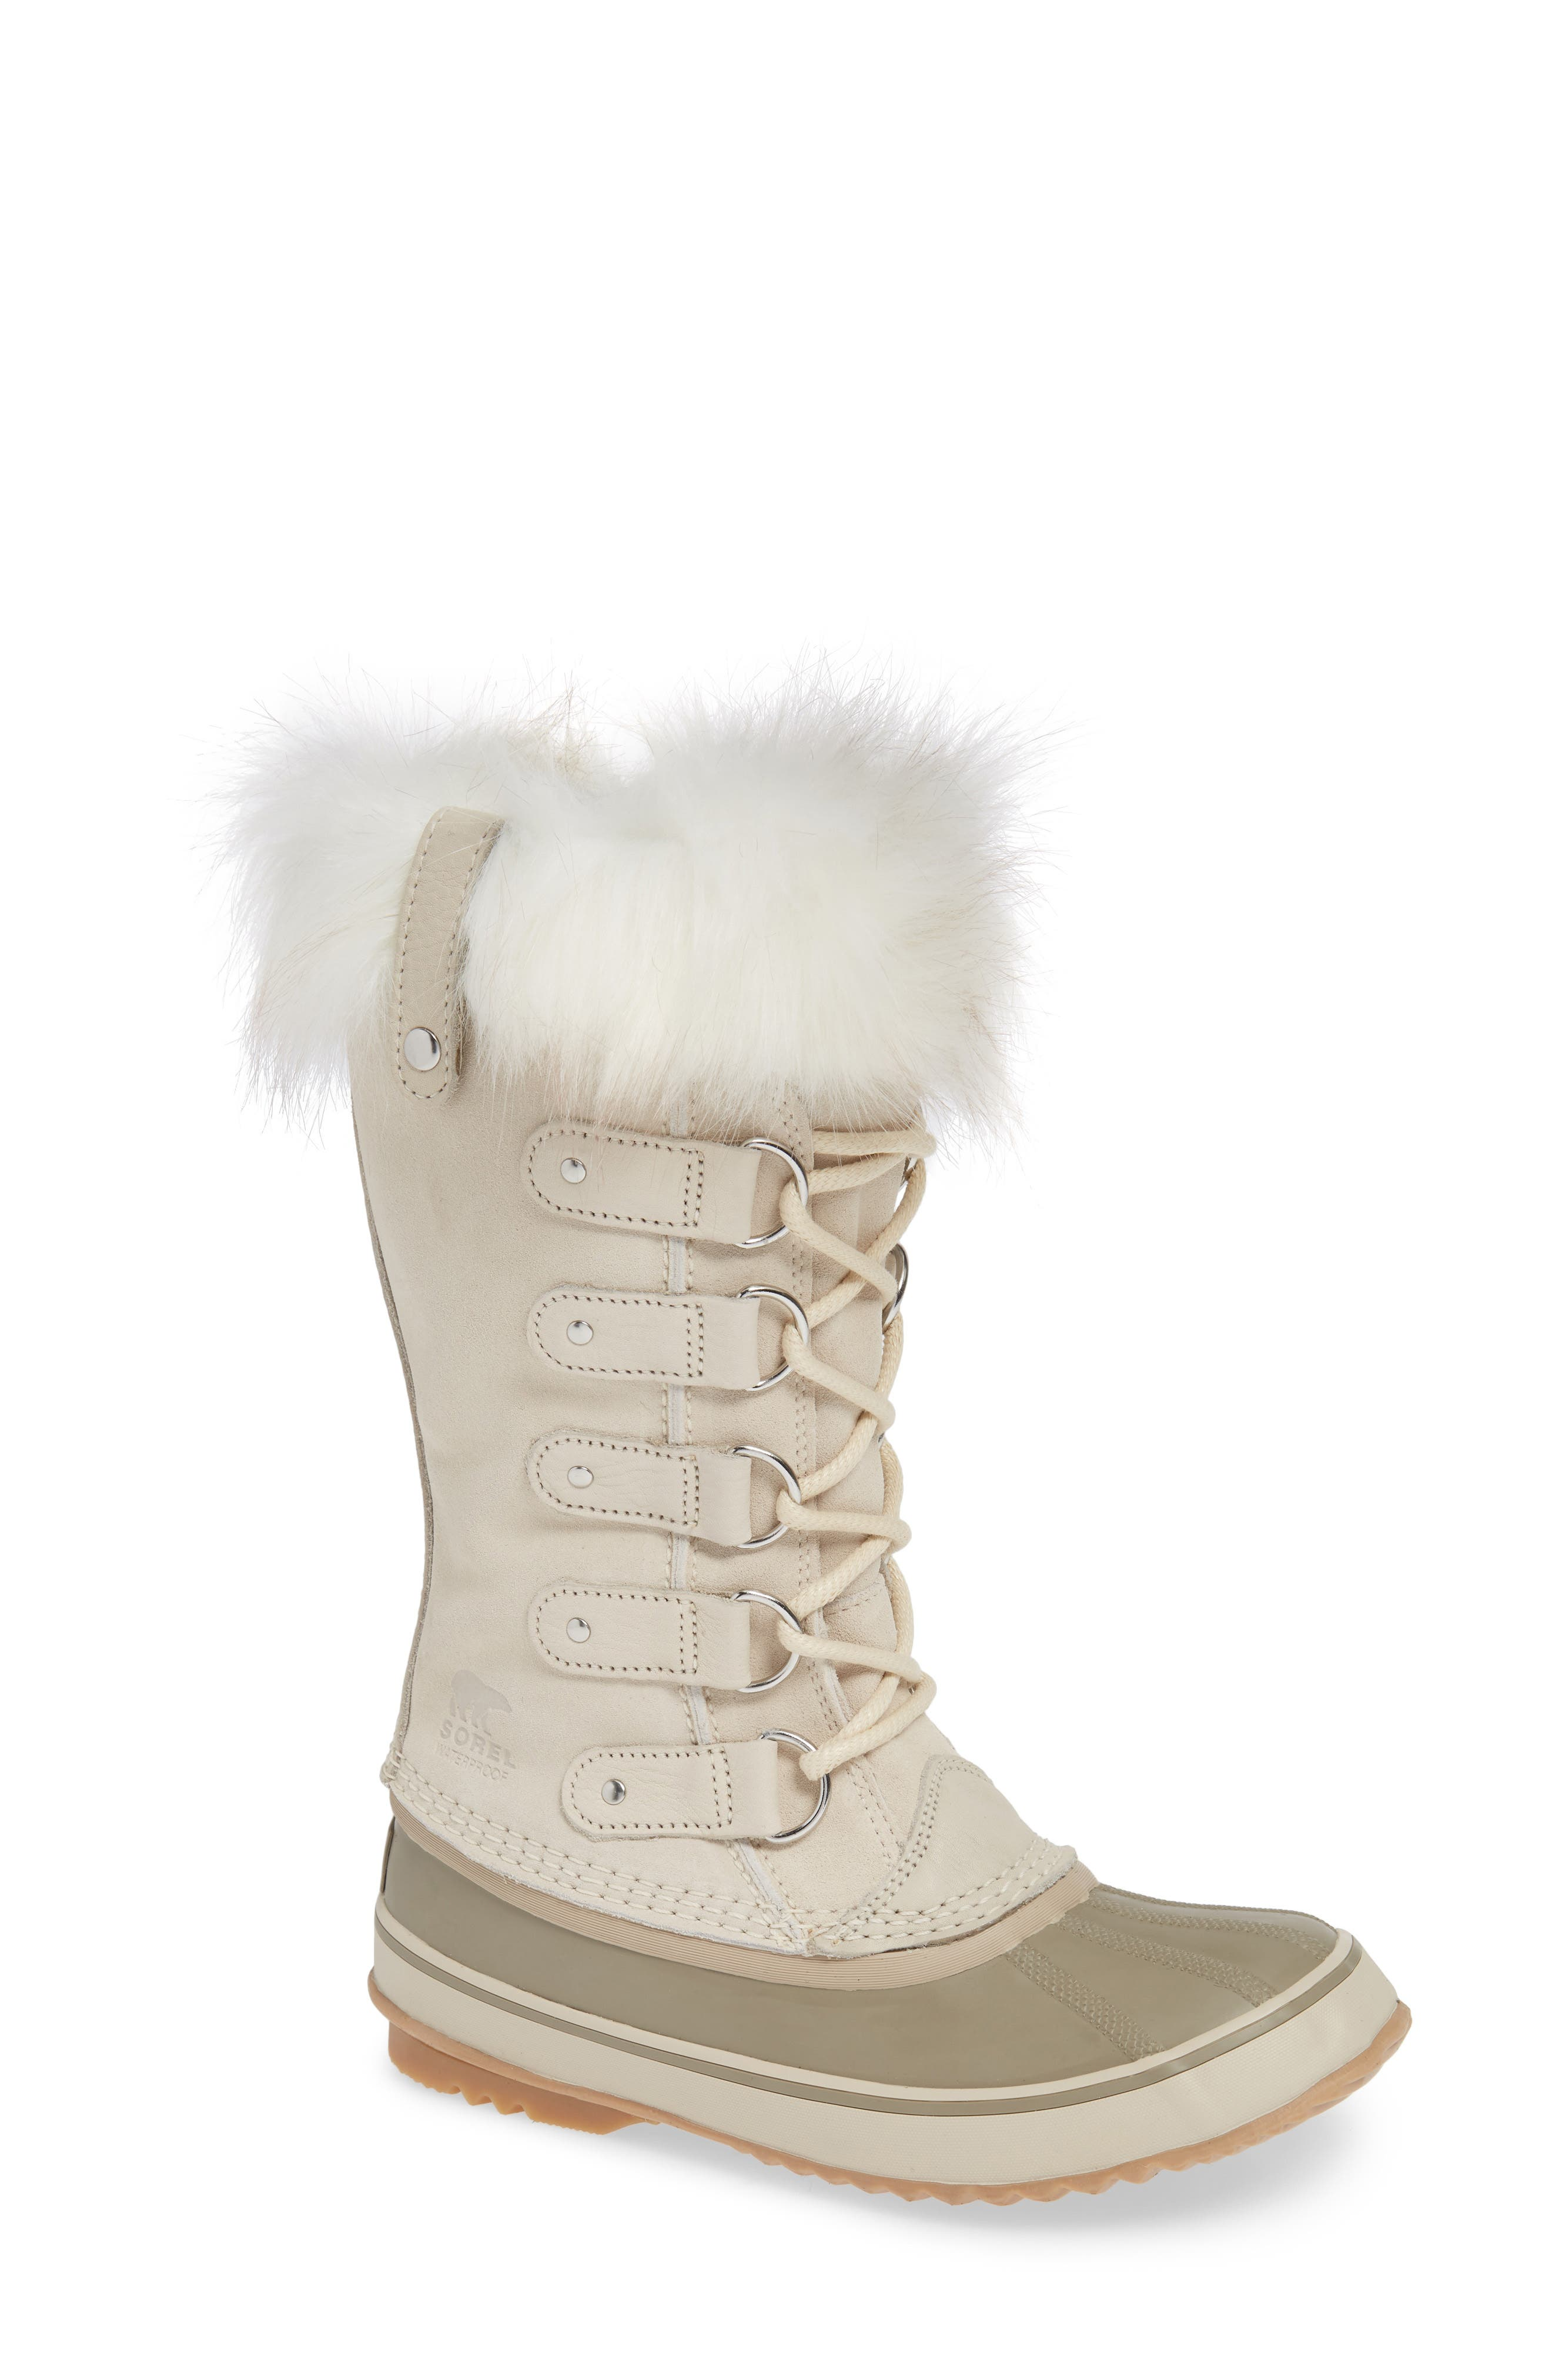 'Joan of Arctic' Waterproof Snow Boot,                         Main,                         color, FAWN